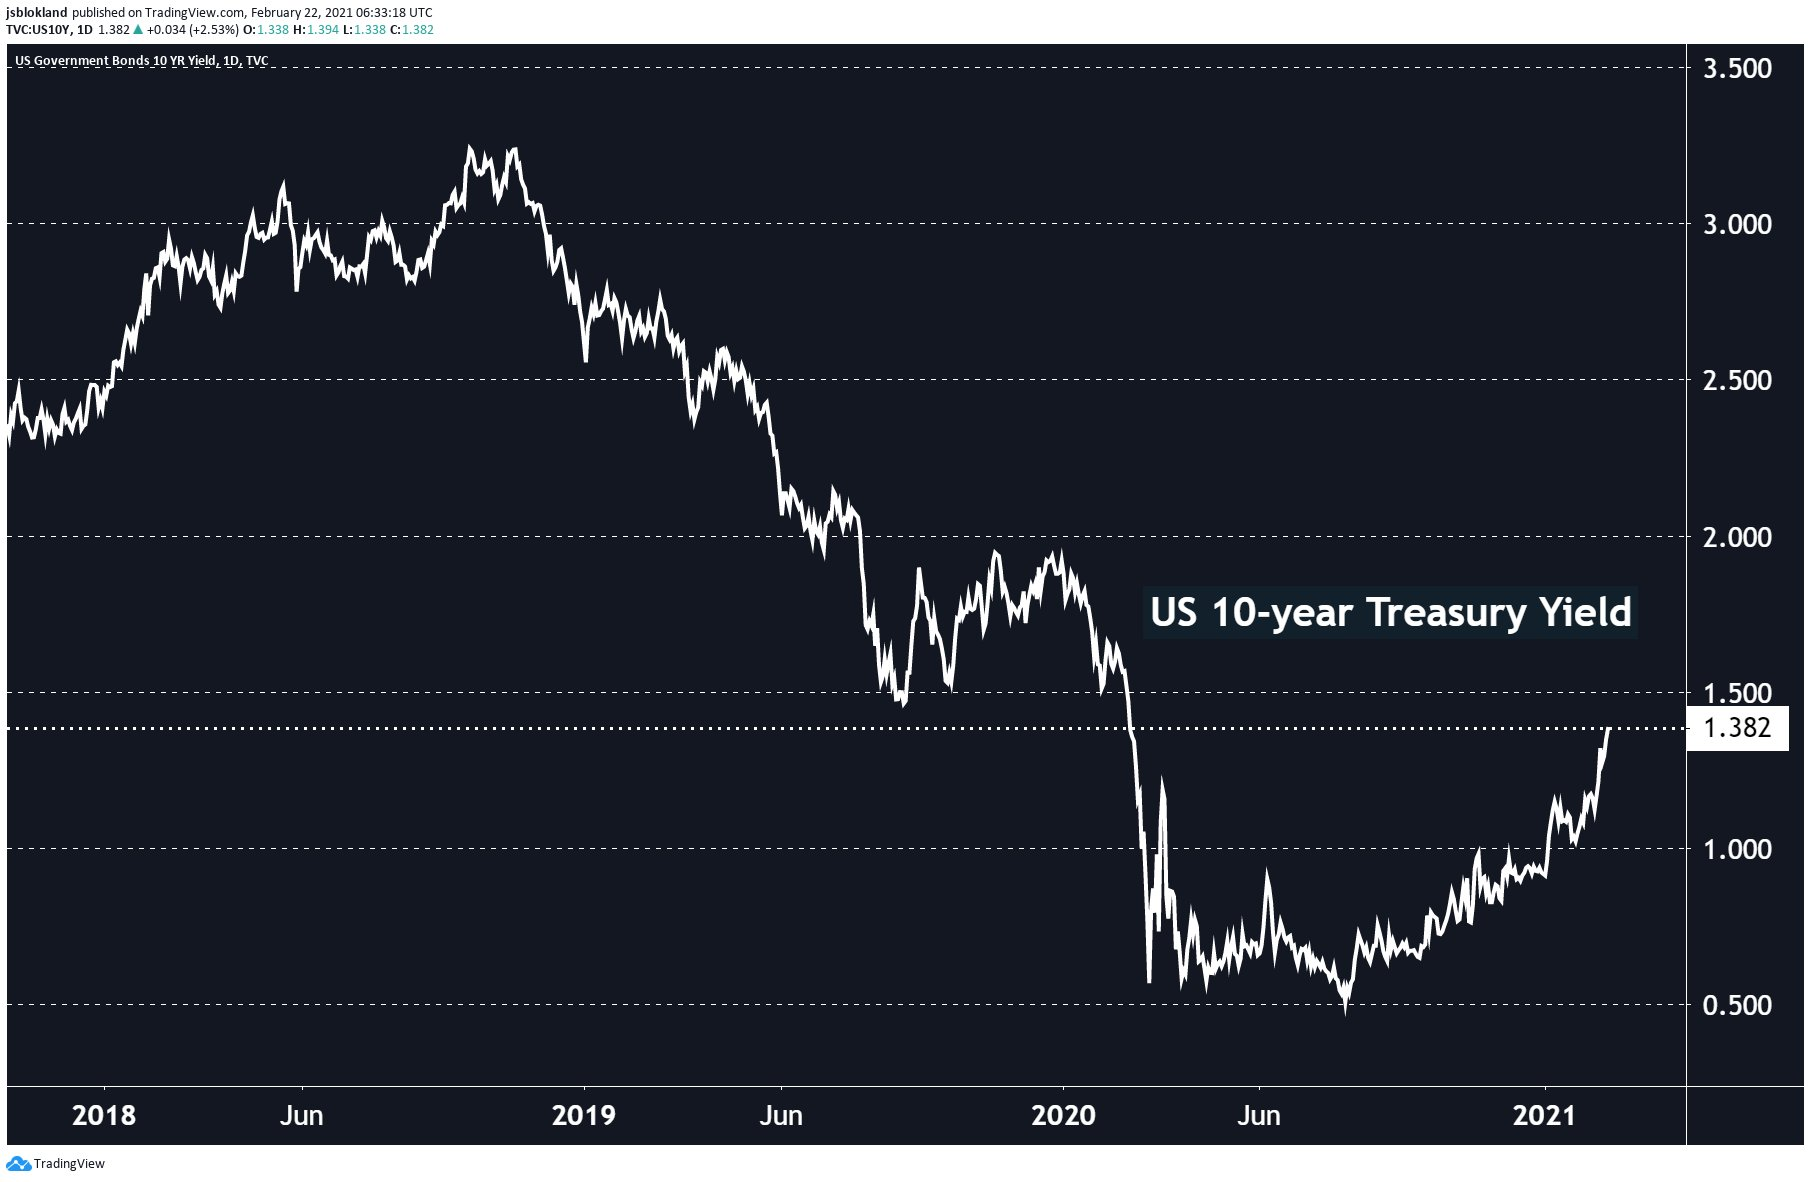 US 10-year Treasury Yield continues to rise